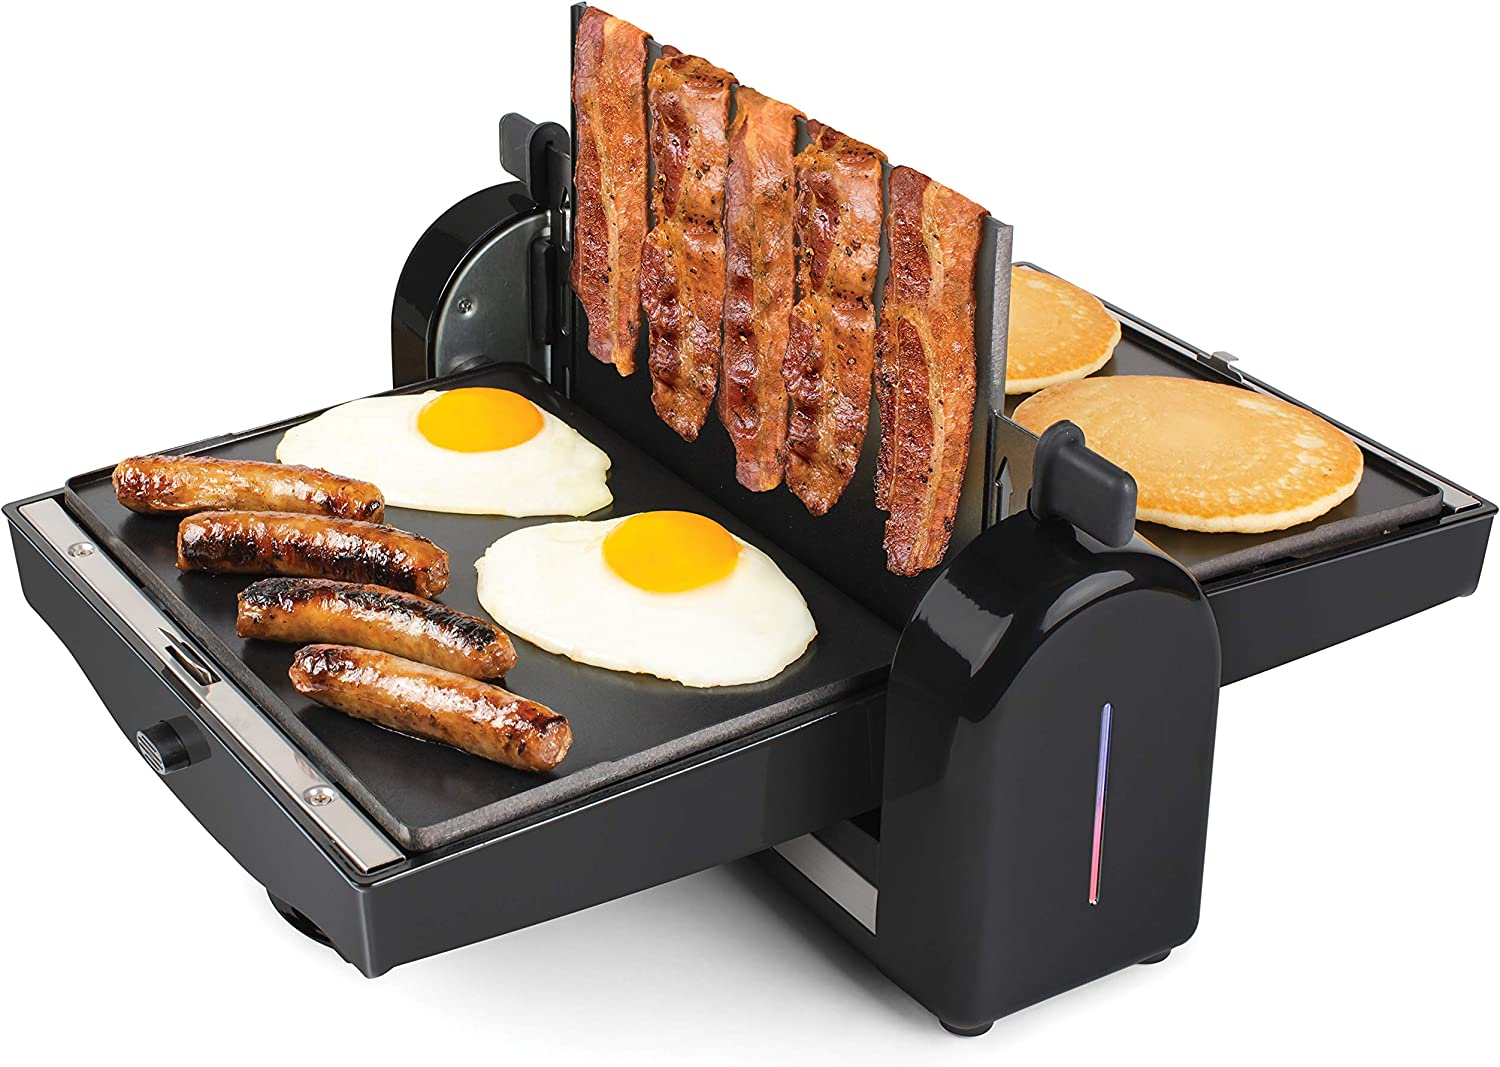 HomeCraft FBG2 Nonstick Electric Bacon Press & Griddle, Cooks 6 Pieces, Perfect For Eggs, Sausage, Pancakes, Hashbrowns, 6-Slice, Black